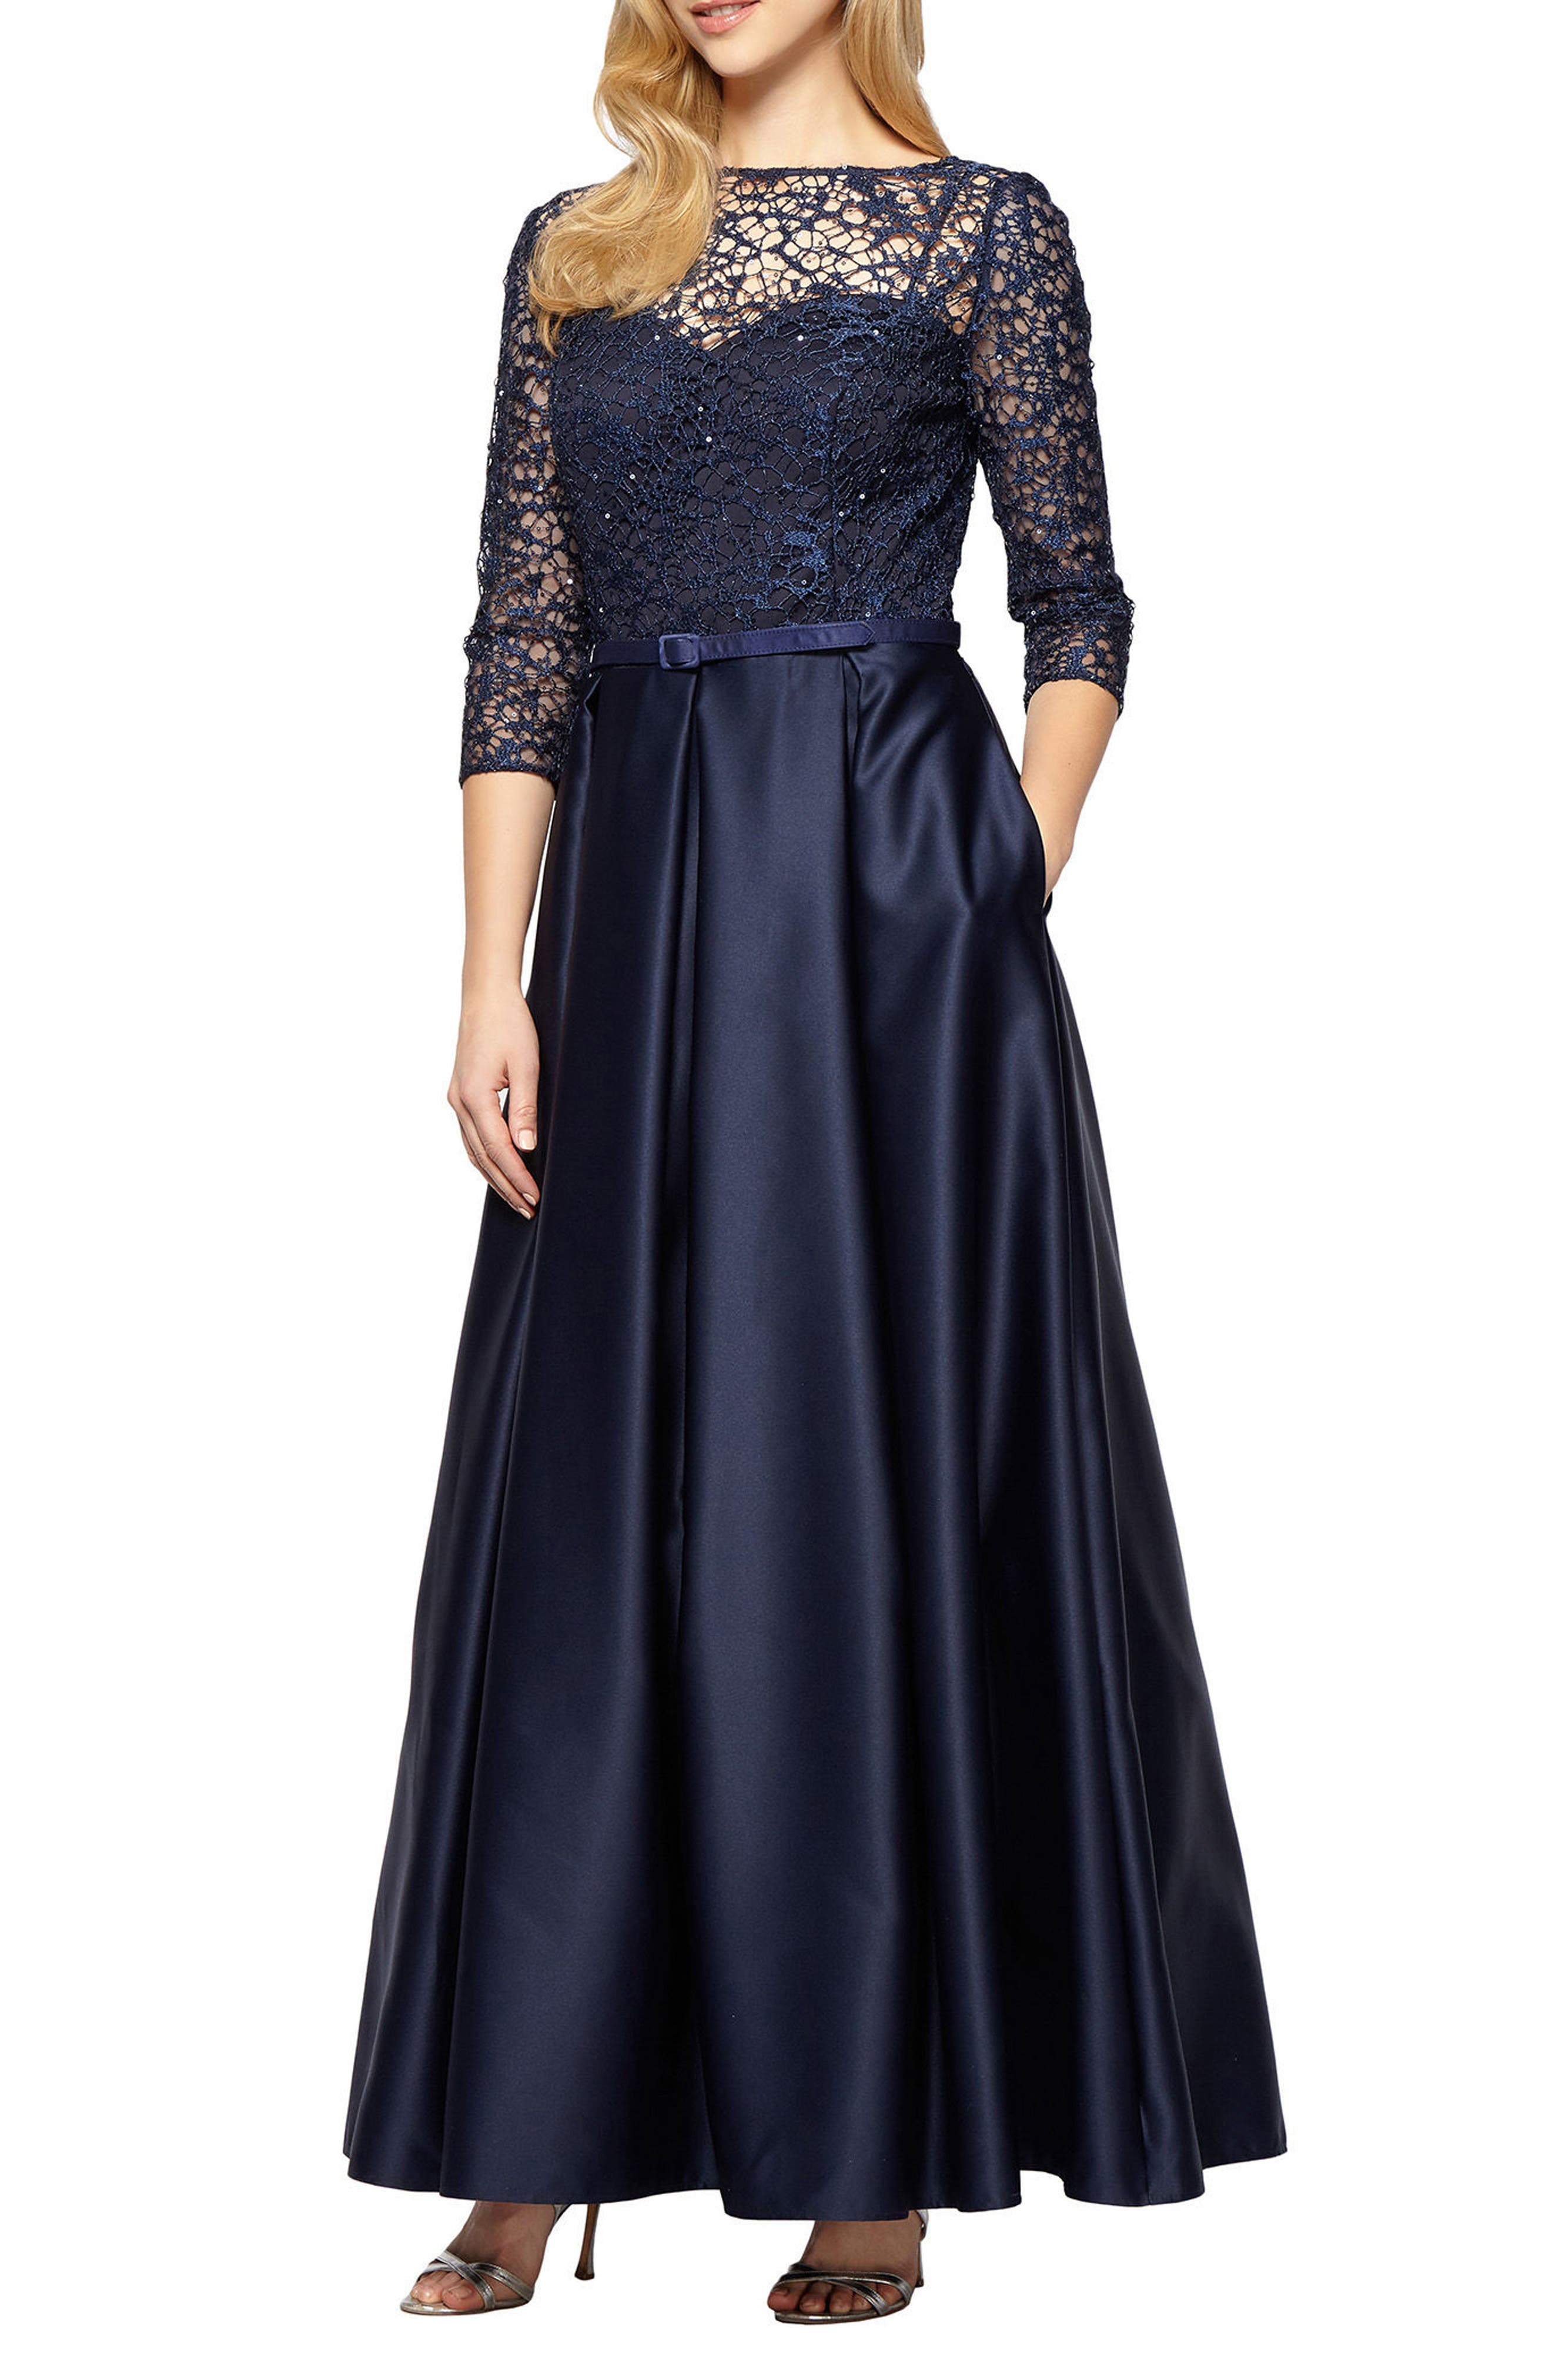 Main Image - Alex Evenings Embellished Lace & Satin Ballgown